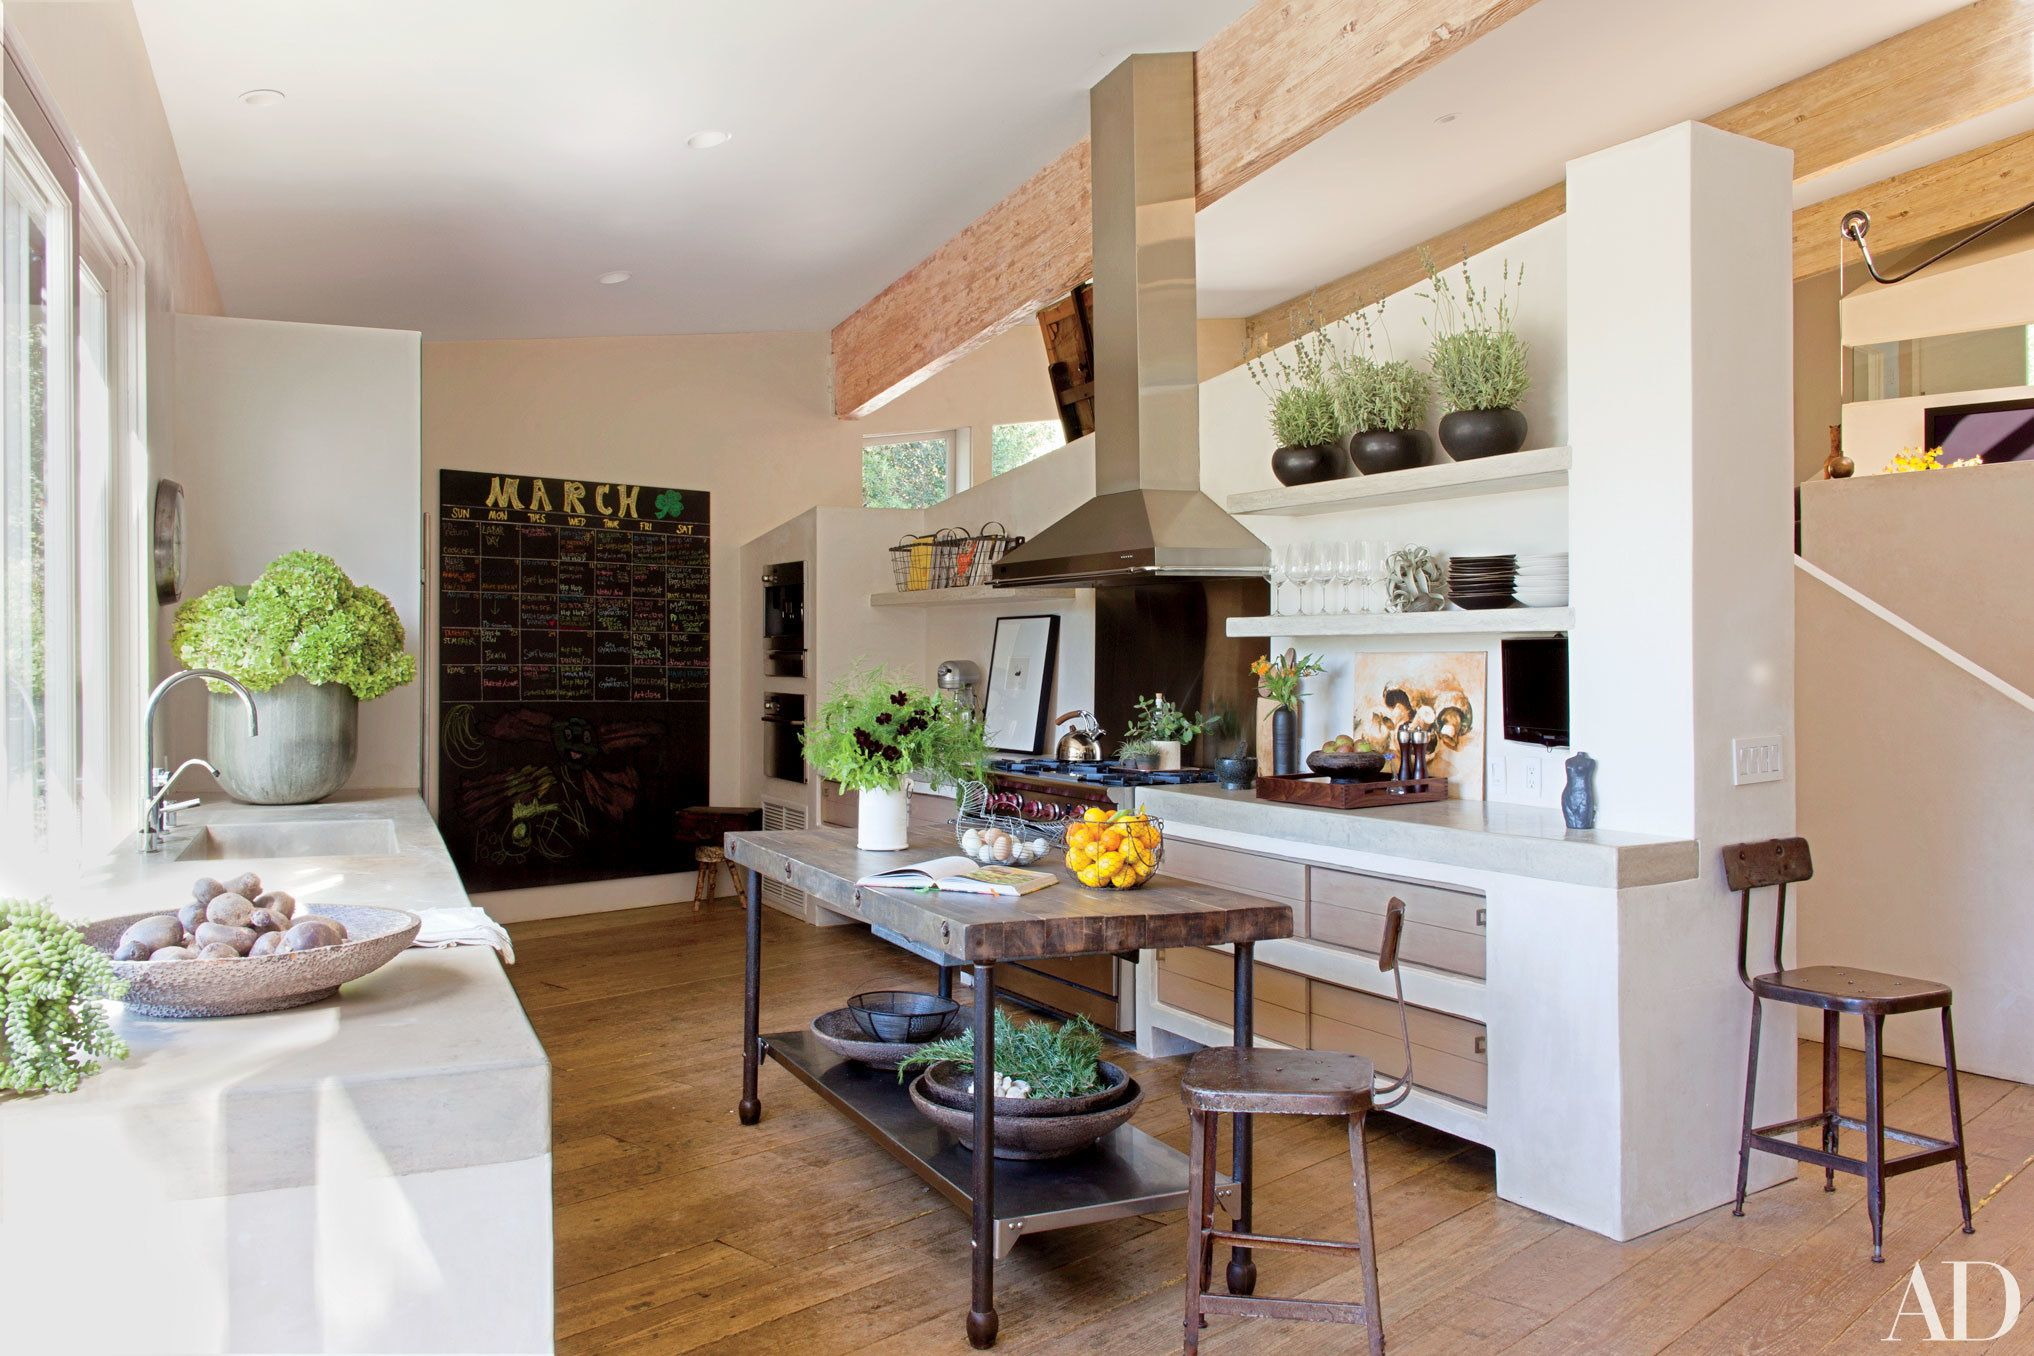 29 celebrity kitchens with incredible style celebrity kitchens